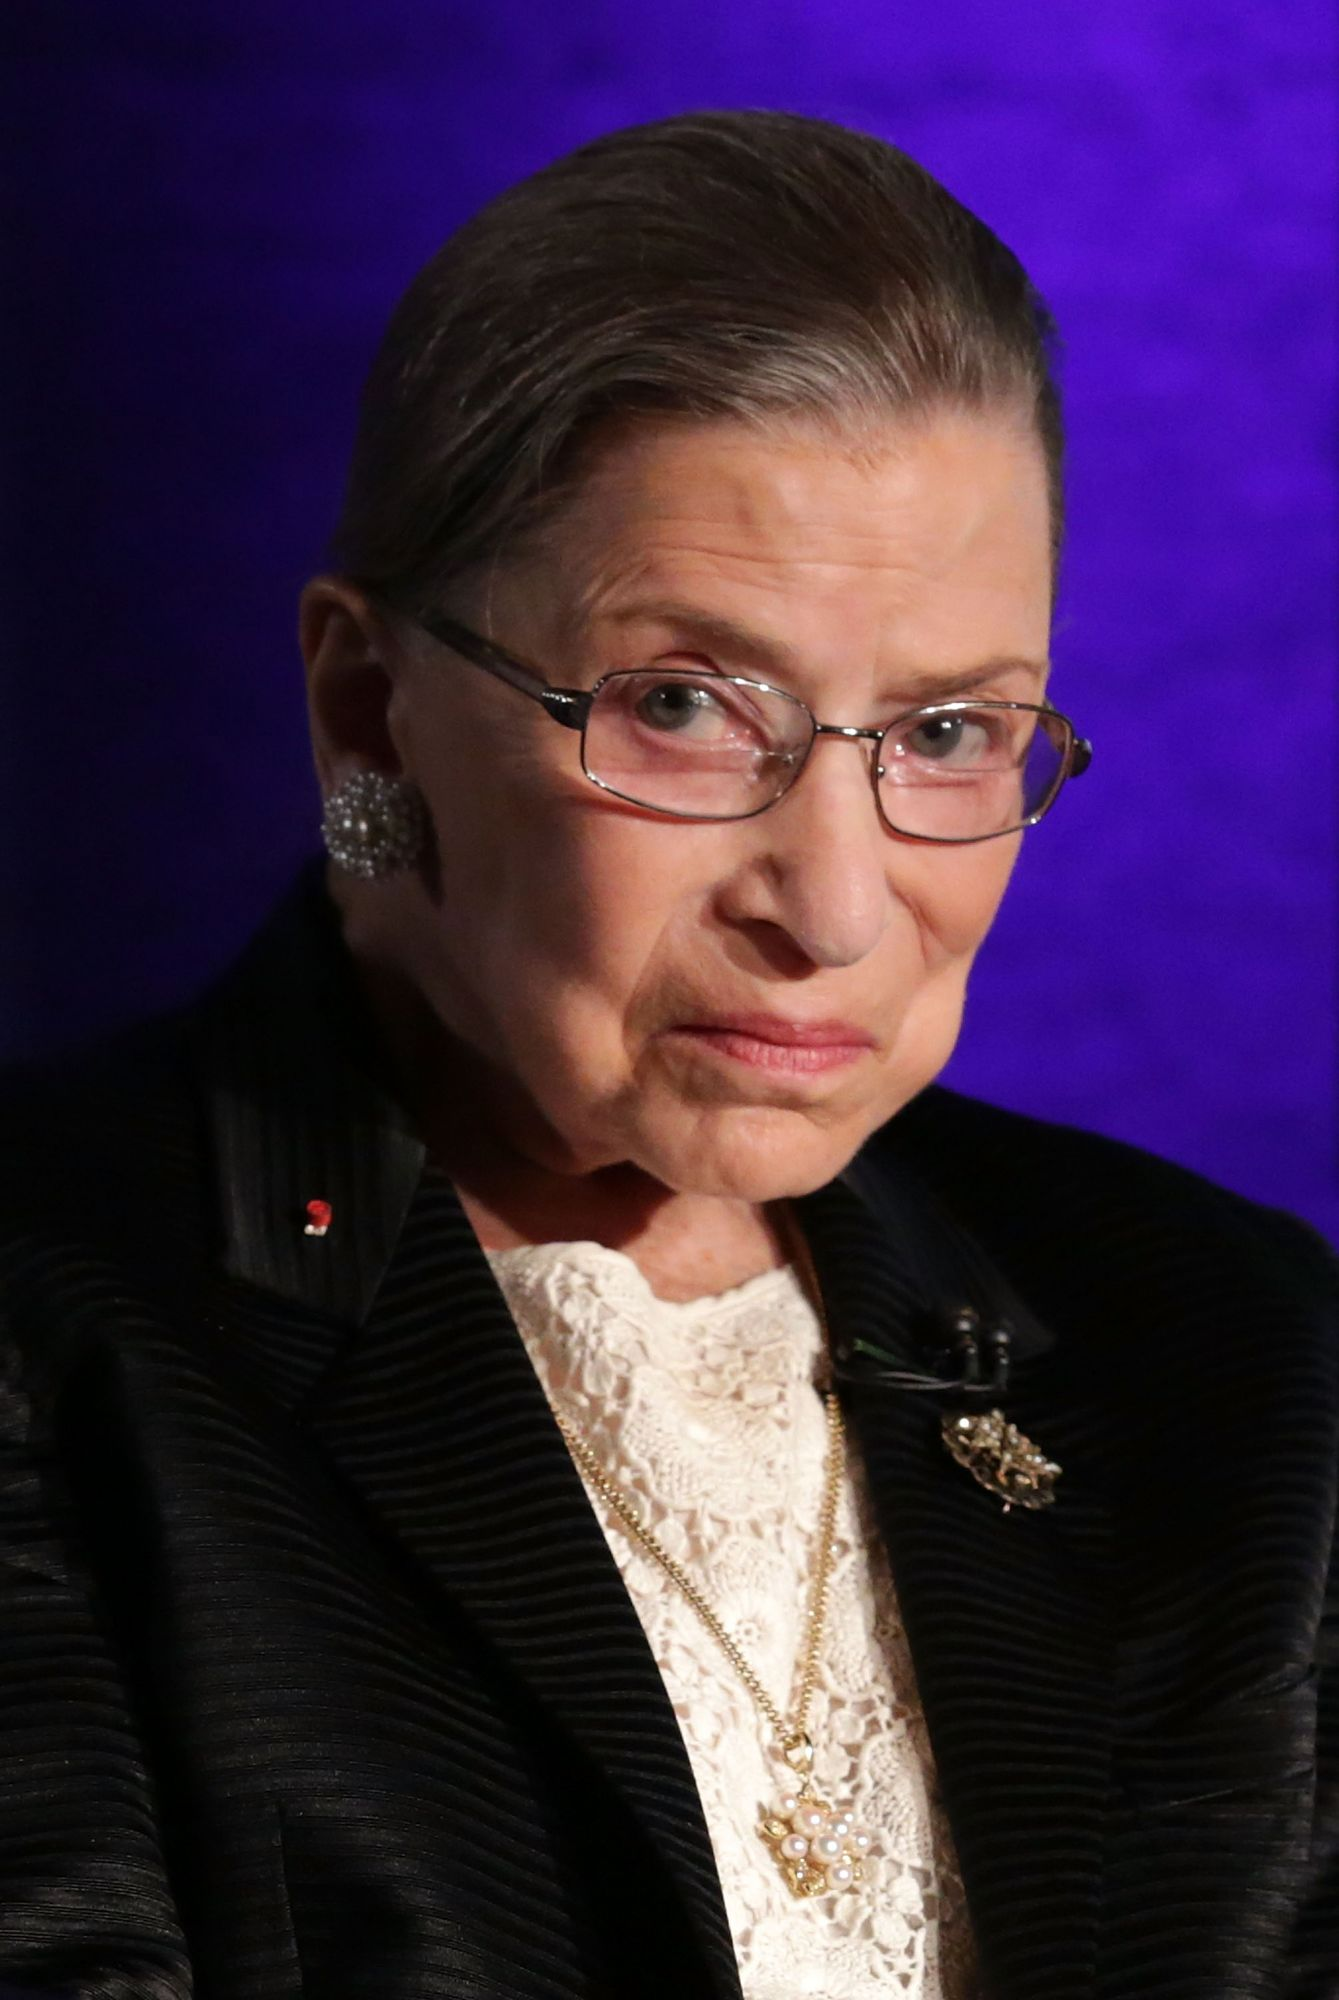 """WASHINGTON, DC - APRIL 17:  Supreme Court Justice Ruth Bader Ginsburg waits for the beginning of the taping of """"The Kalb Report"""" April 17, 2014 at the National Press Club in Washington, DC. The Kalb Report is a discussion of media ethics and responsibility at the National Press Club held each month. (Photo by Alex Wong/Getty Images)"""